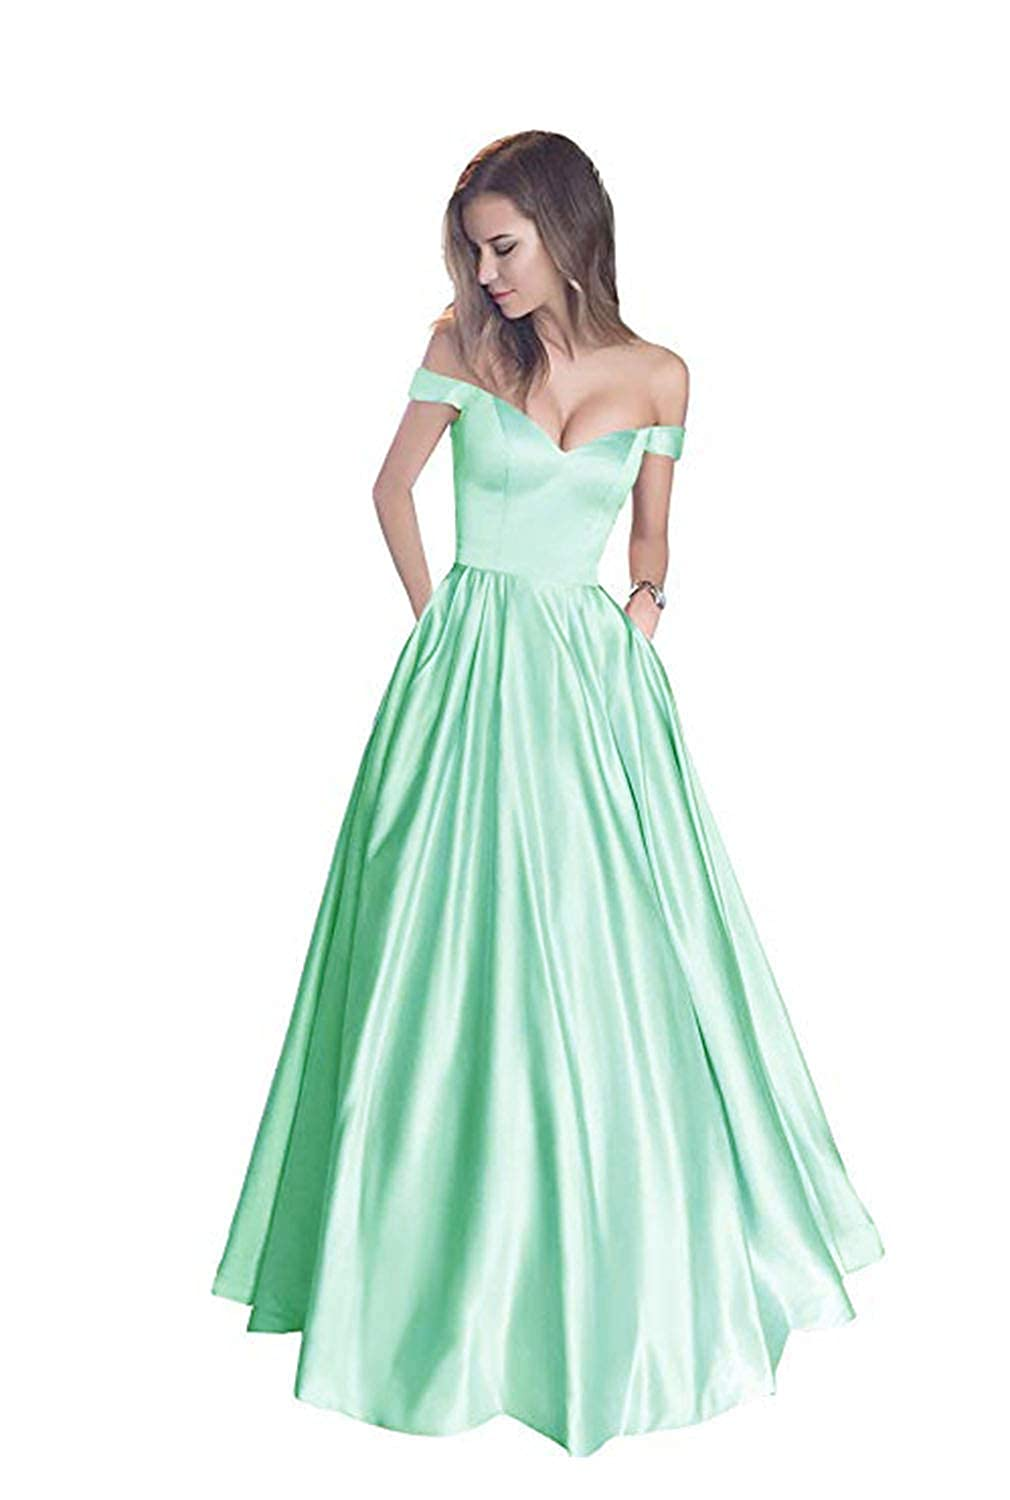 Mint without Belt FJMM Womens Off The Shoulder Beaded ALine Prom Dress for Party